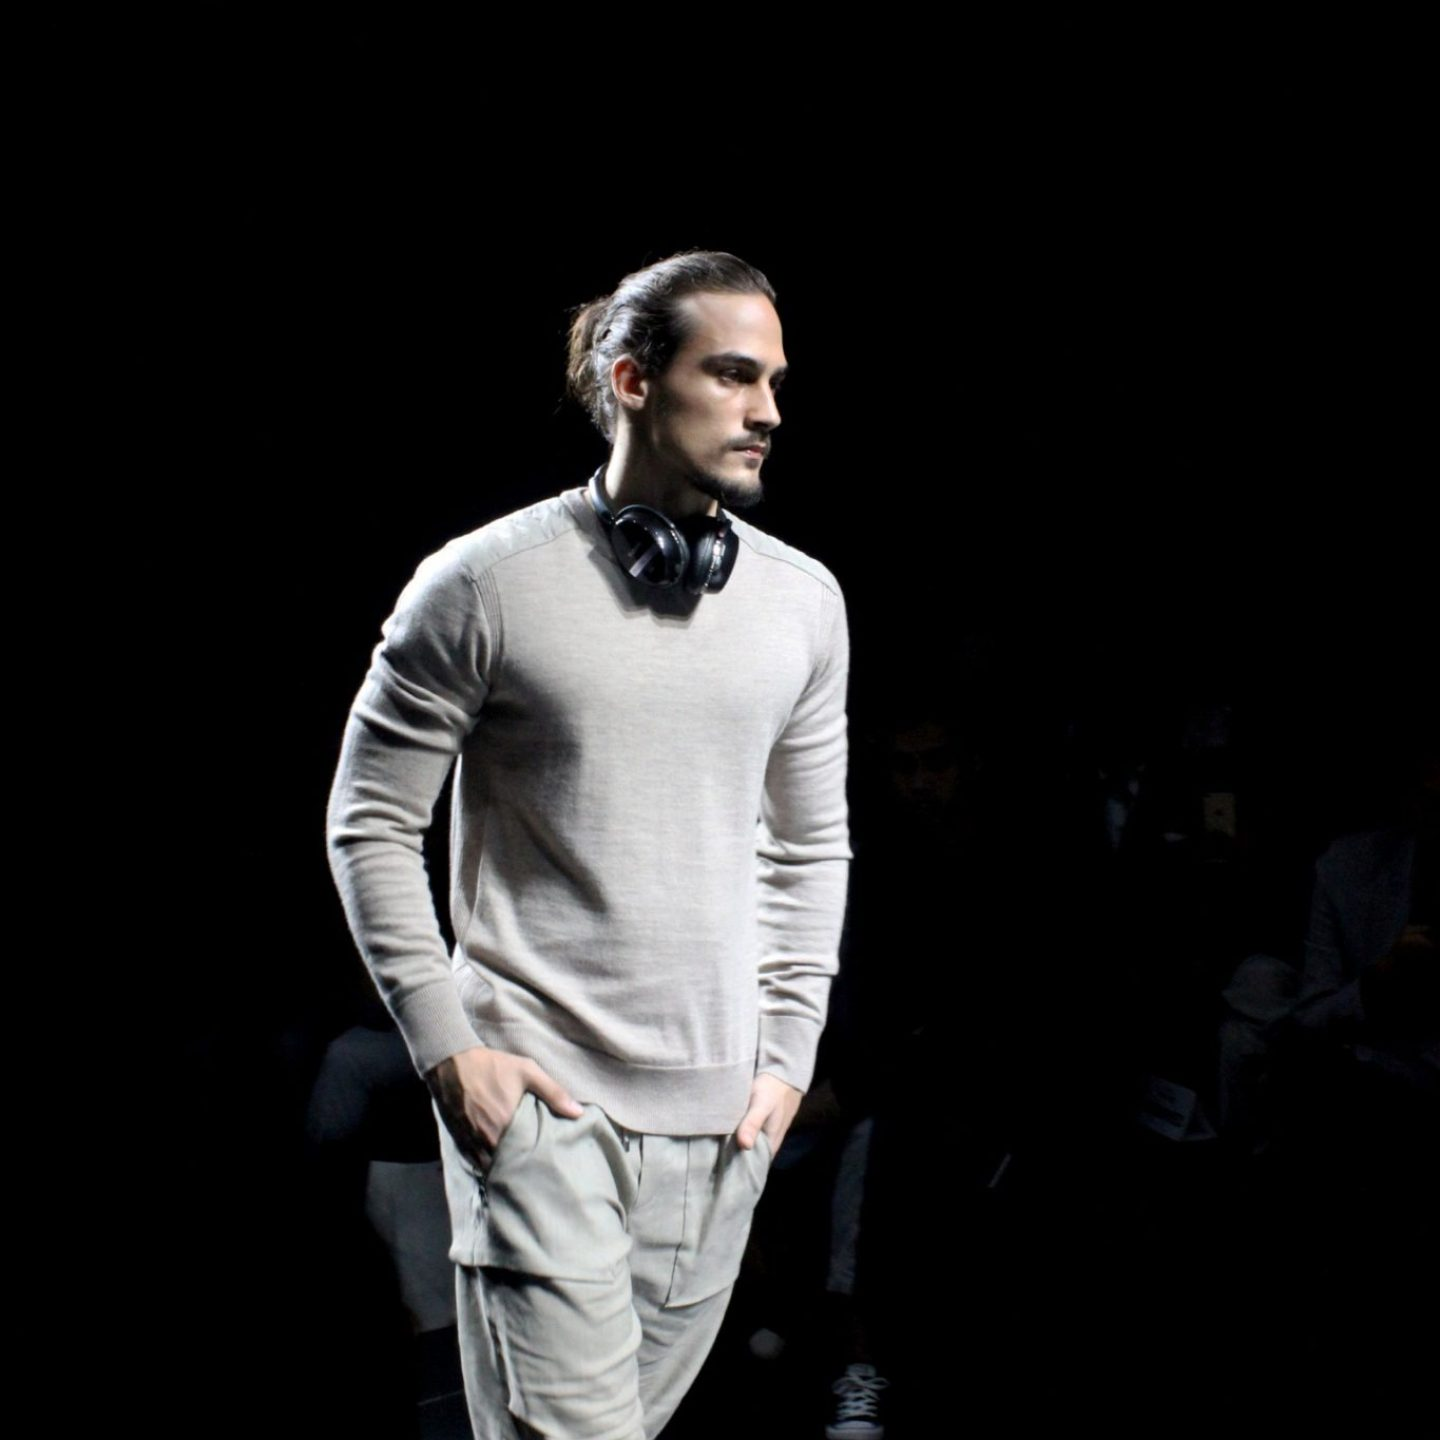 Plaza Indonesia Men's Fashion Week 2016 Day 2